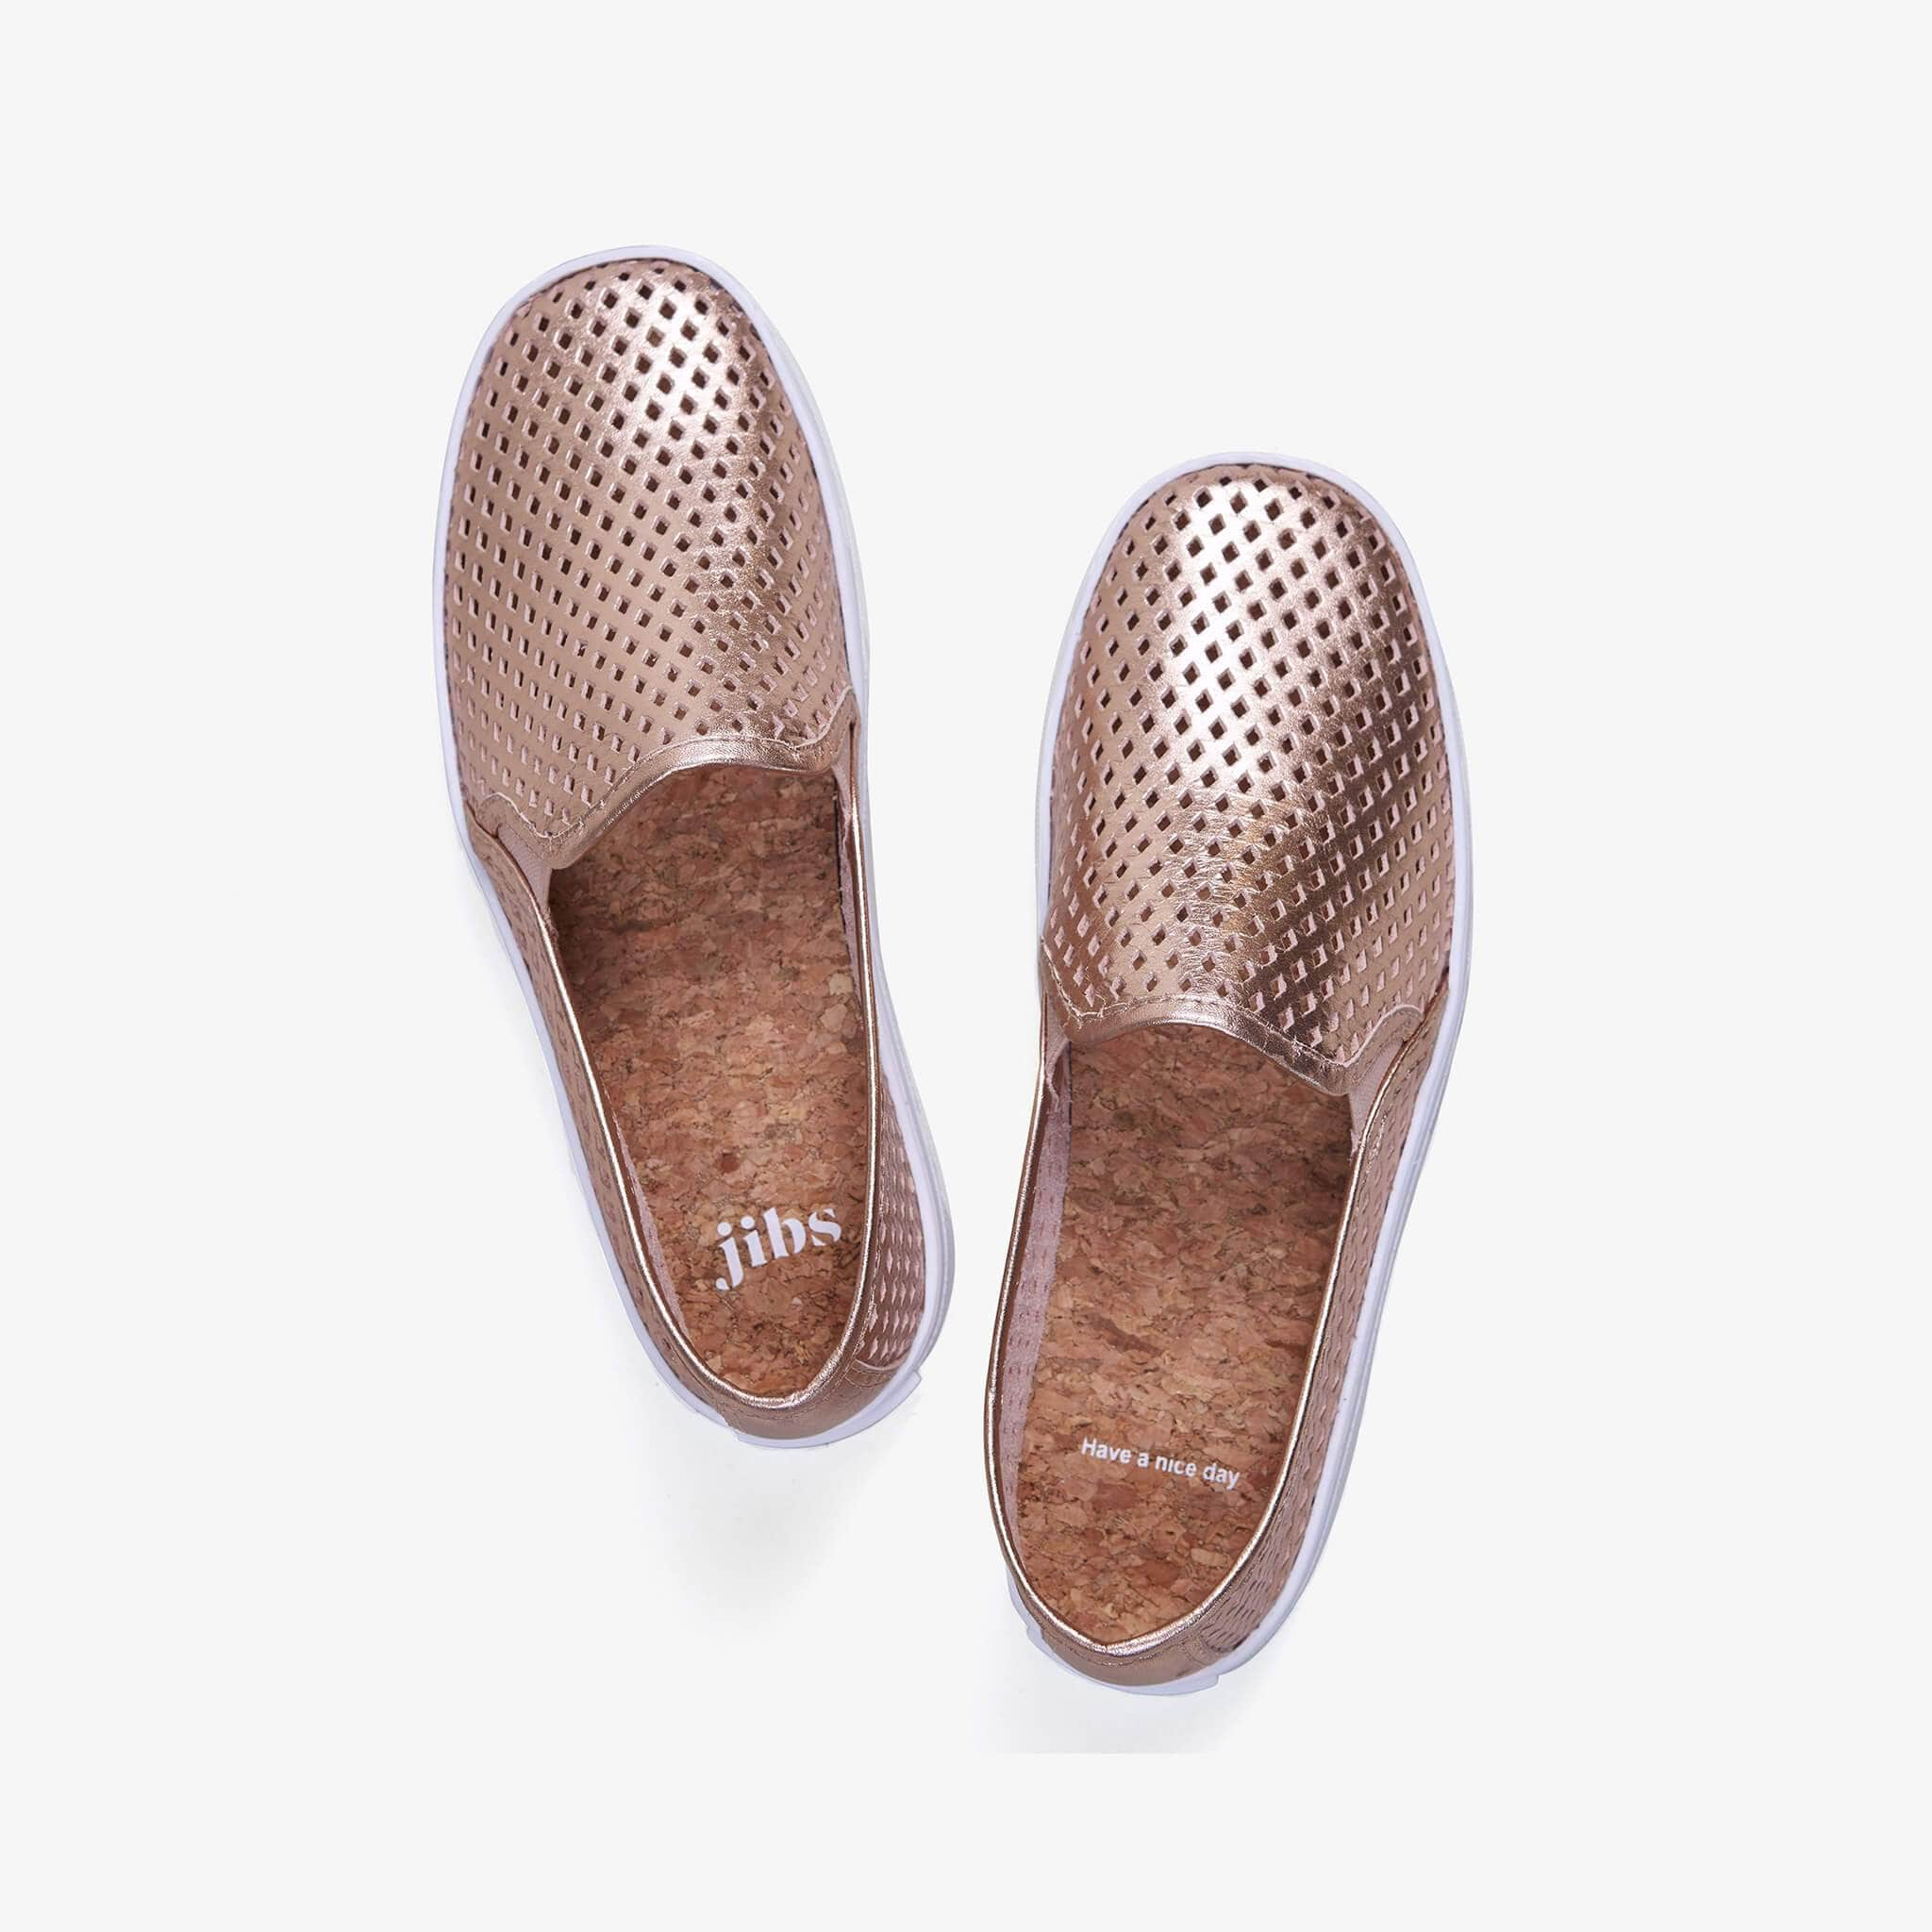 Jibs Classic Rose Gold Slip On Sneaker-Shoe Have A Nice Day Cork In-sole